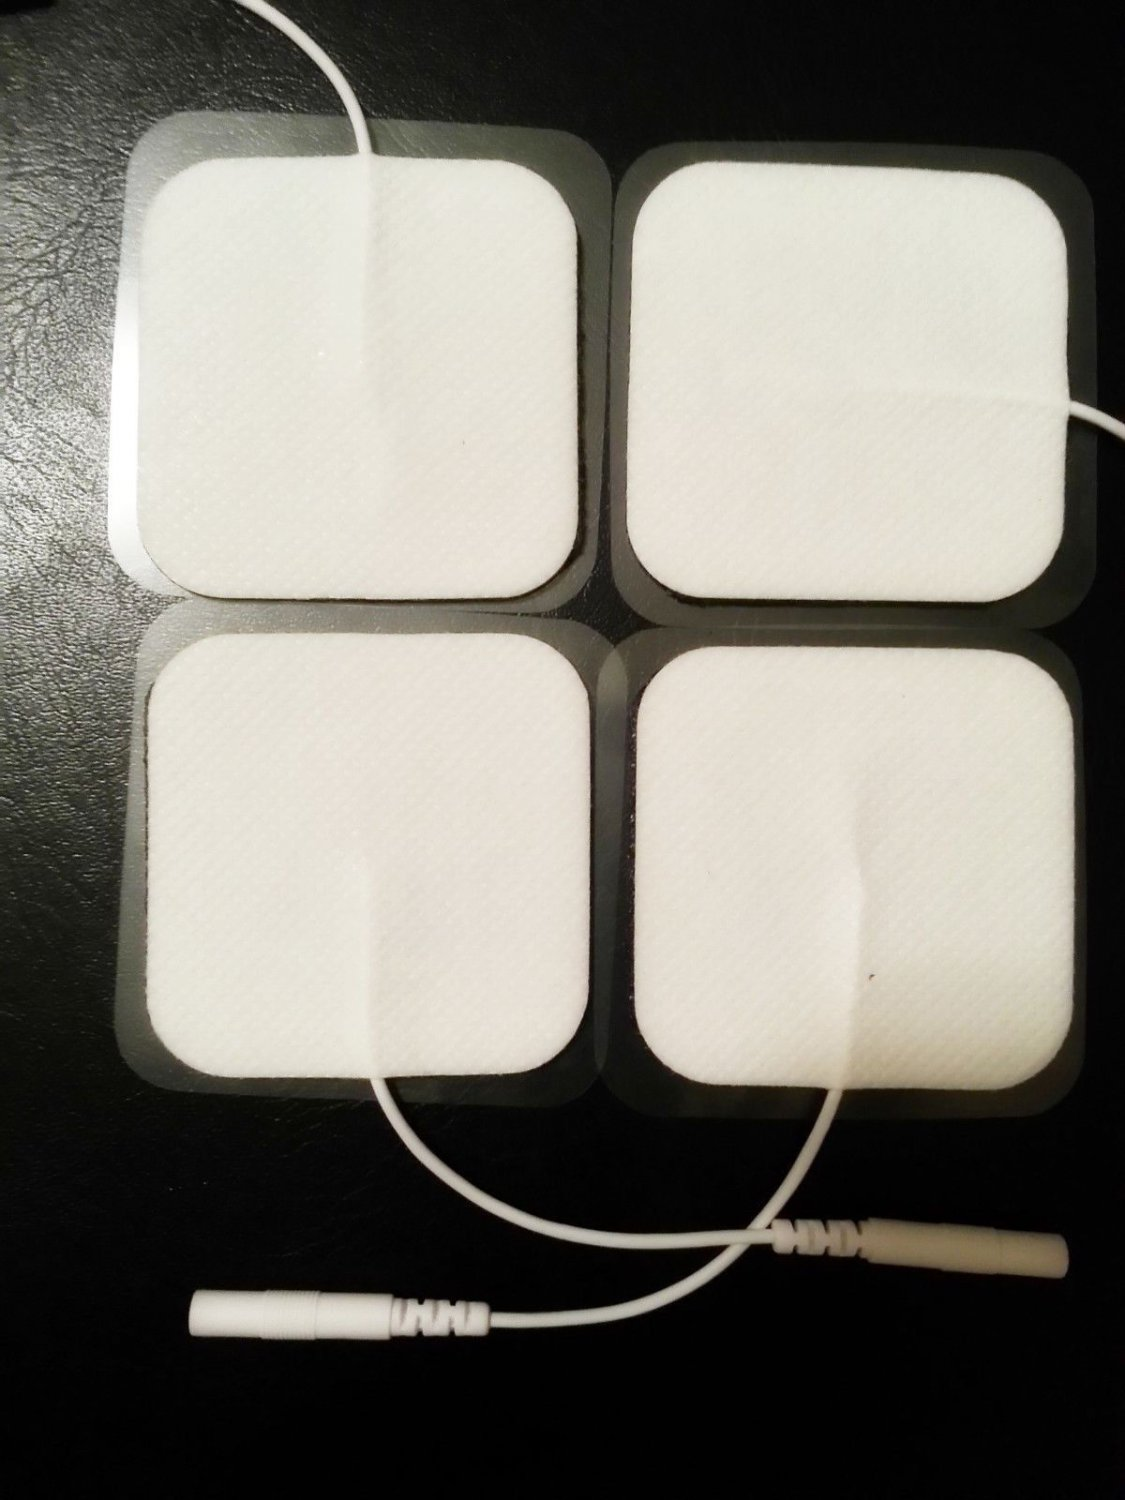 8 pc Square Replacement Electrode Massage Pads for Prosepra PL009 and Leosense